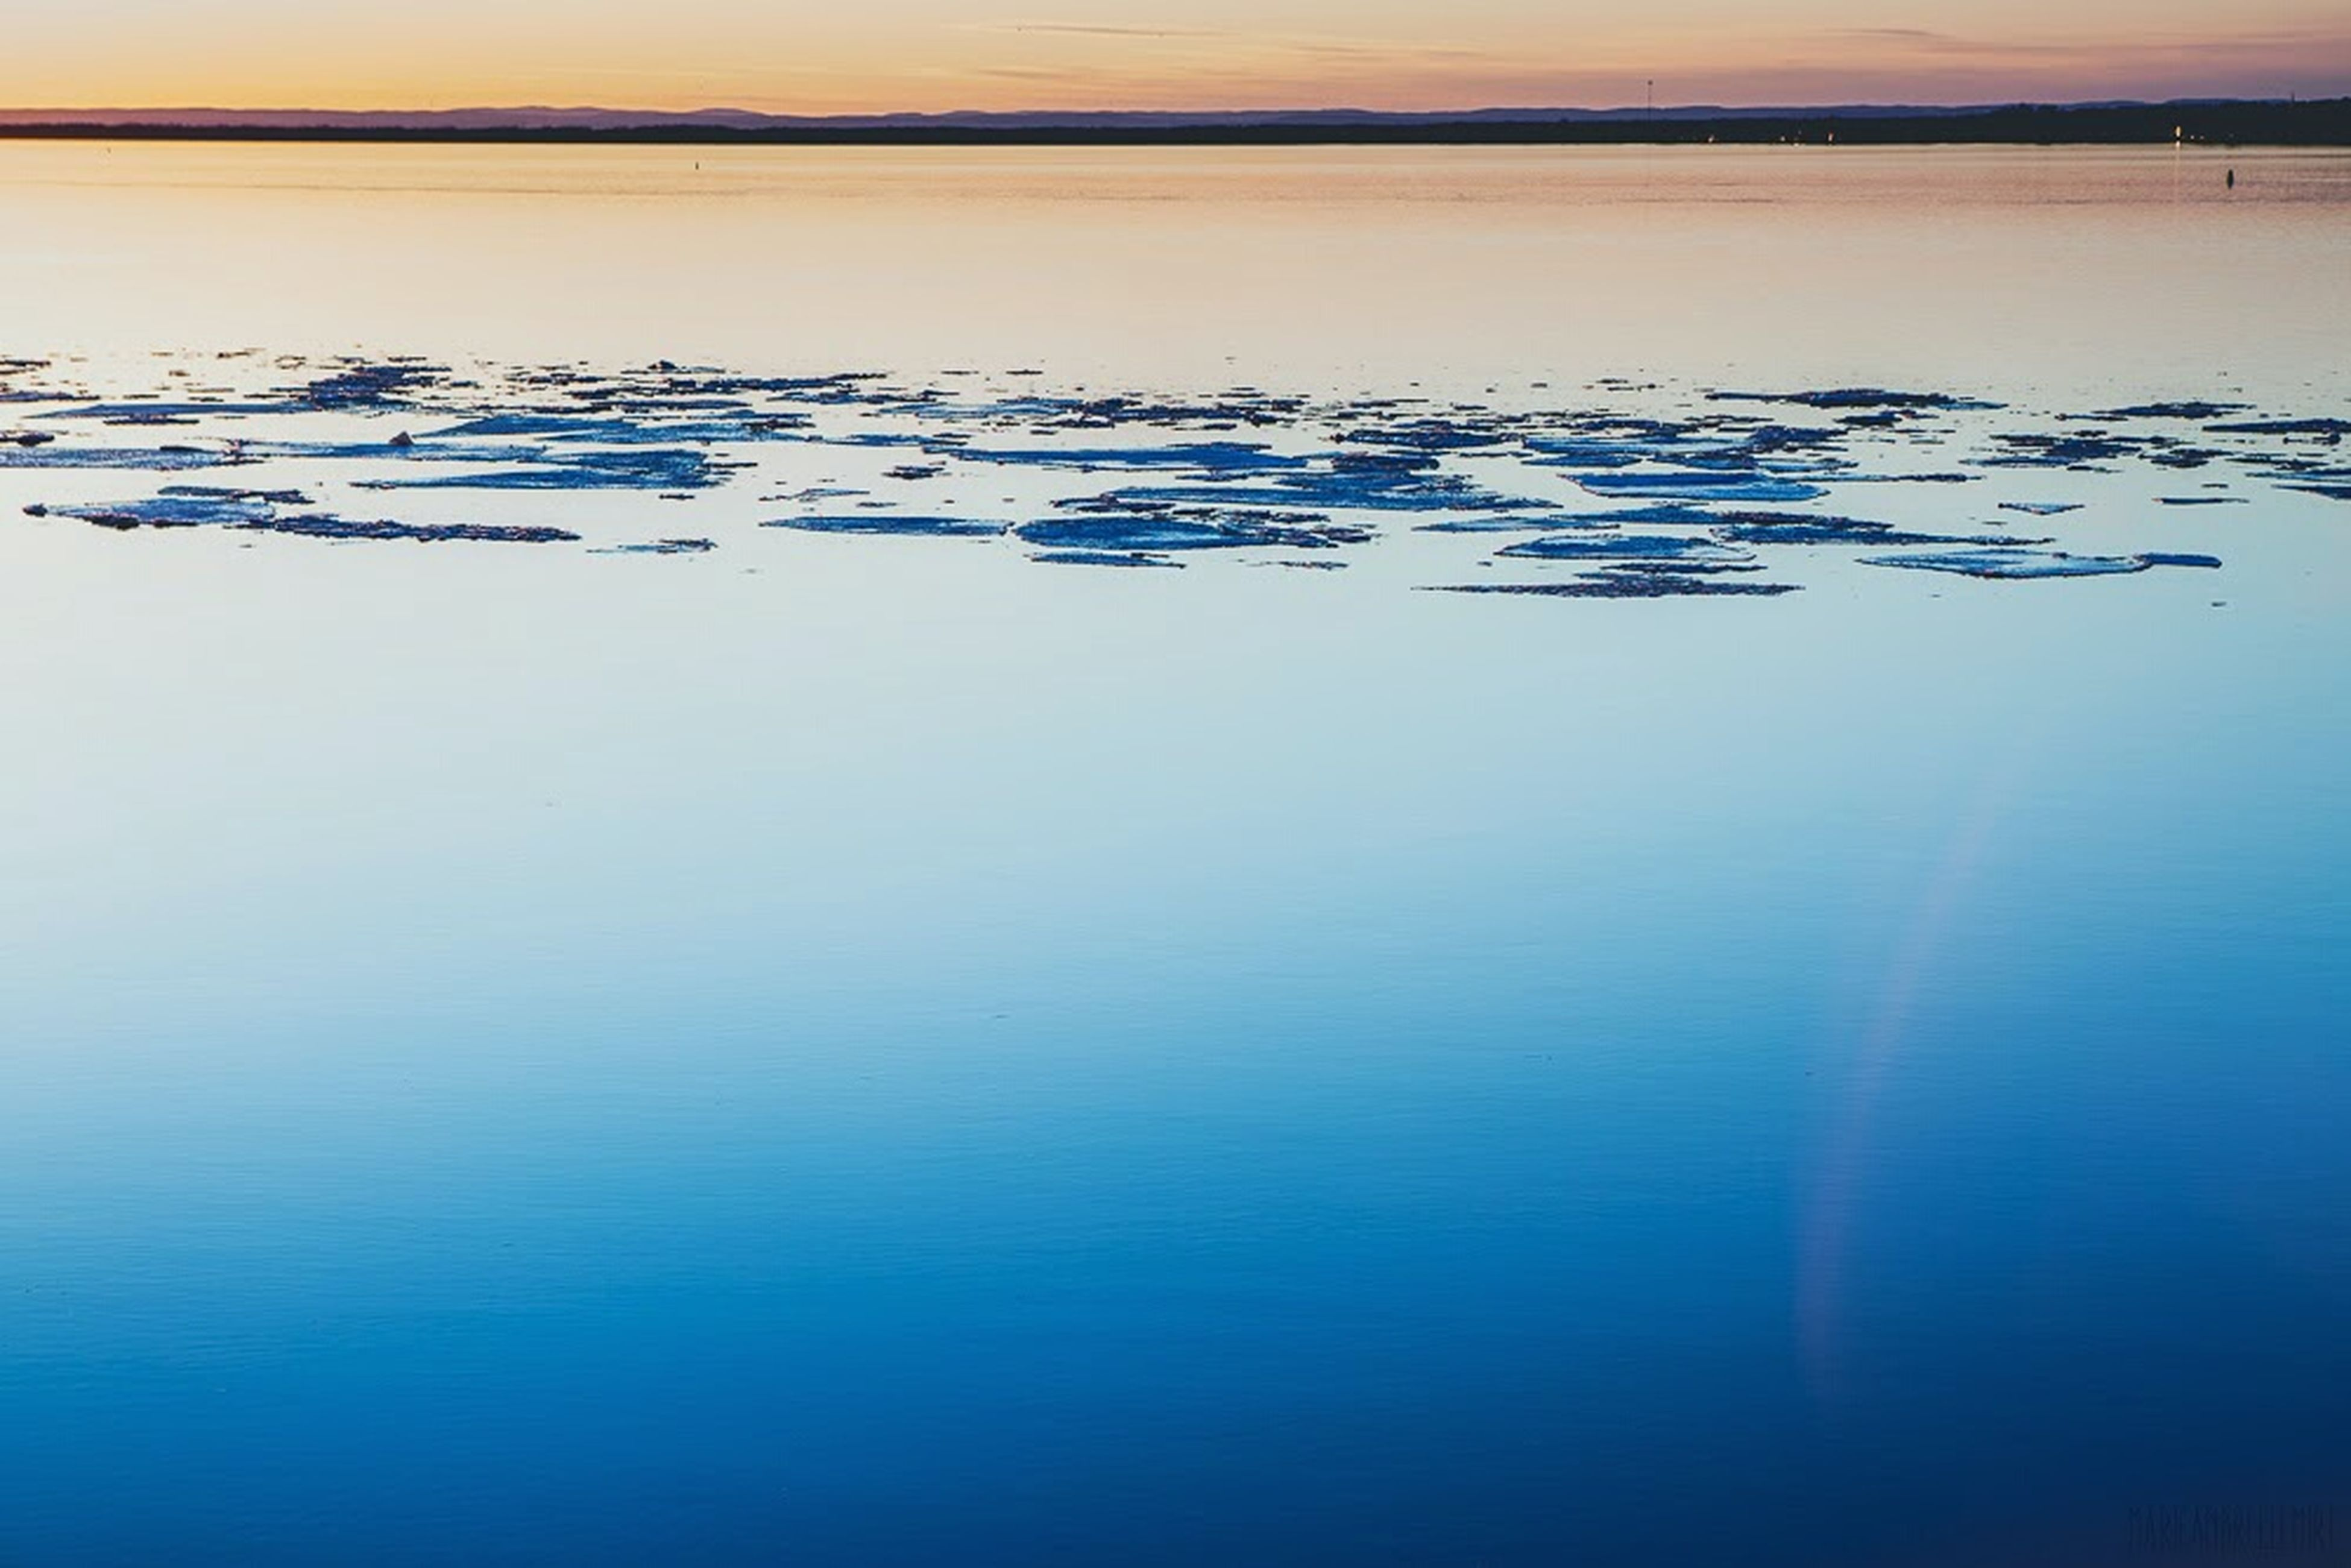 water, sea, tranquil scene, waterfront, tranquility, scenics, beauty in nature, sunset, nature, horizon over water, reflection, idyllic, sky, blue, calm, outdoors, no people, rippled, dusk, lake